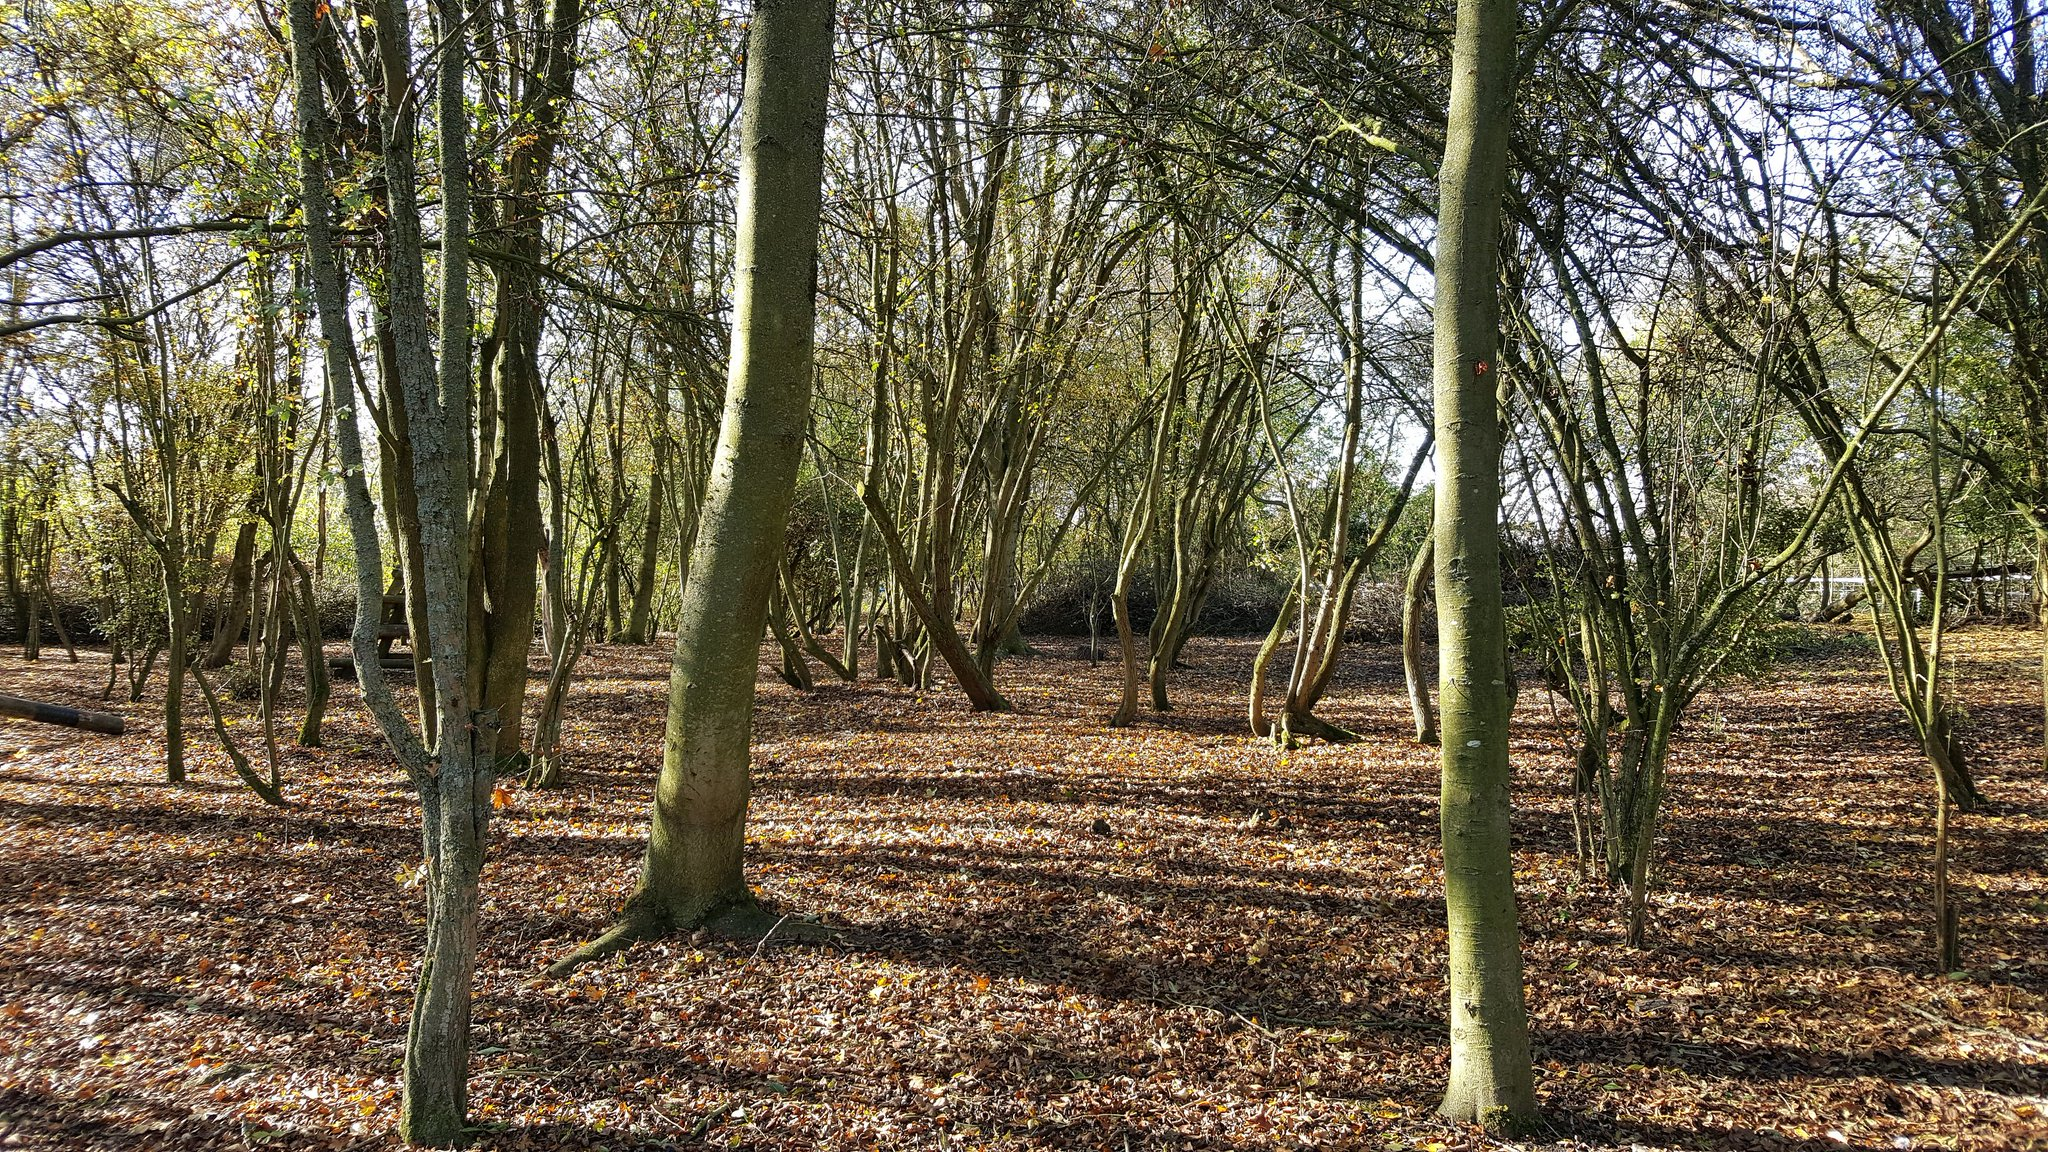 Perfect #autumn afternoon for crunching through the leaves in the coppice at #MaryArdensFarm https://t.co/58NBaiWwVv